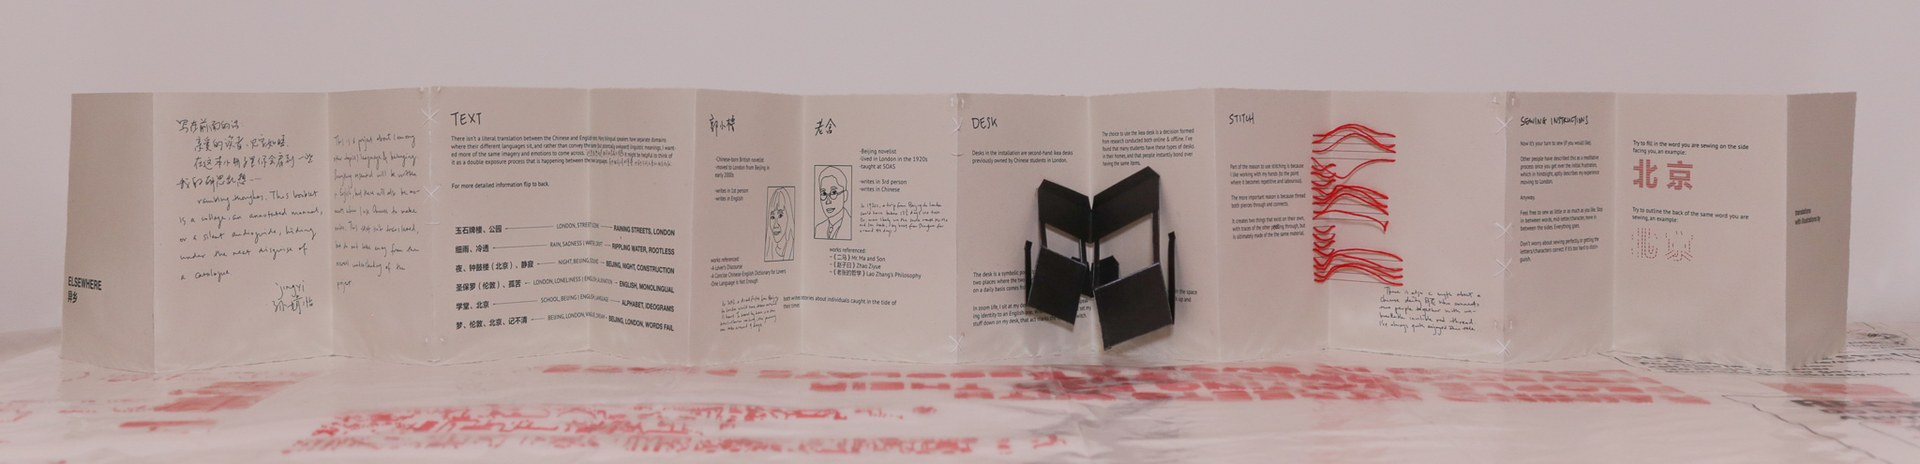 physical copy of booklet, one side detailing overall themes